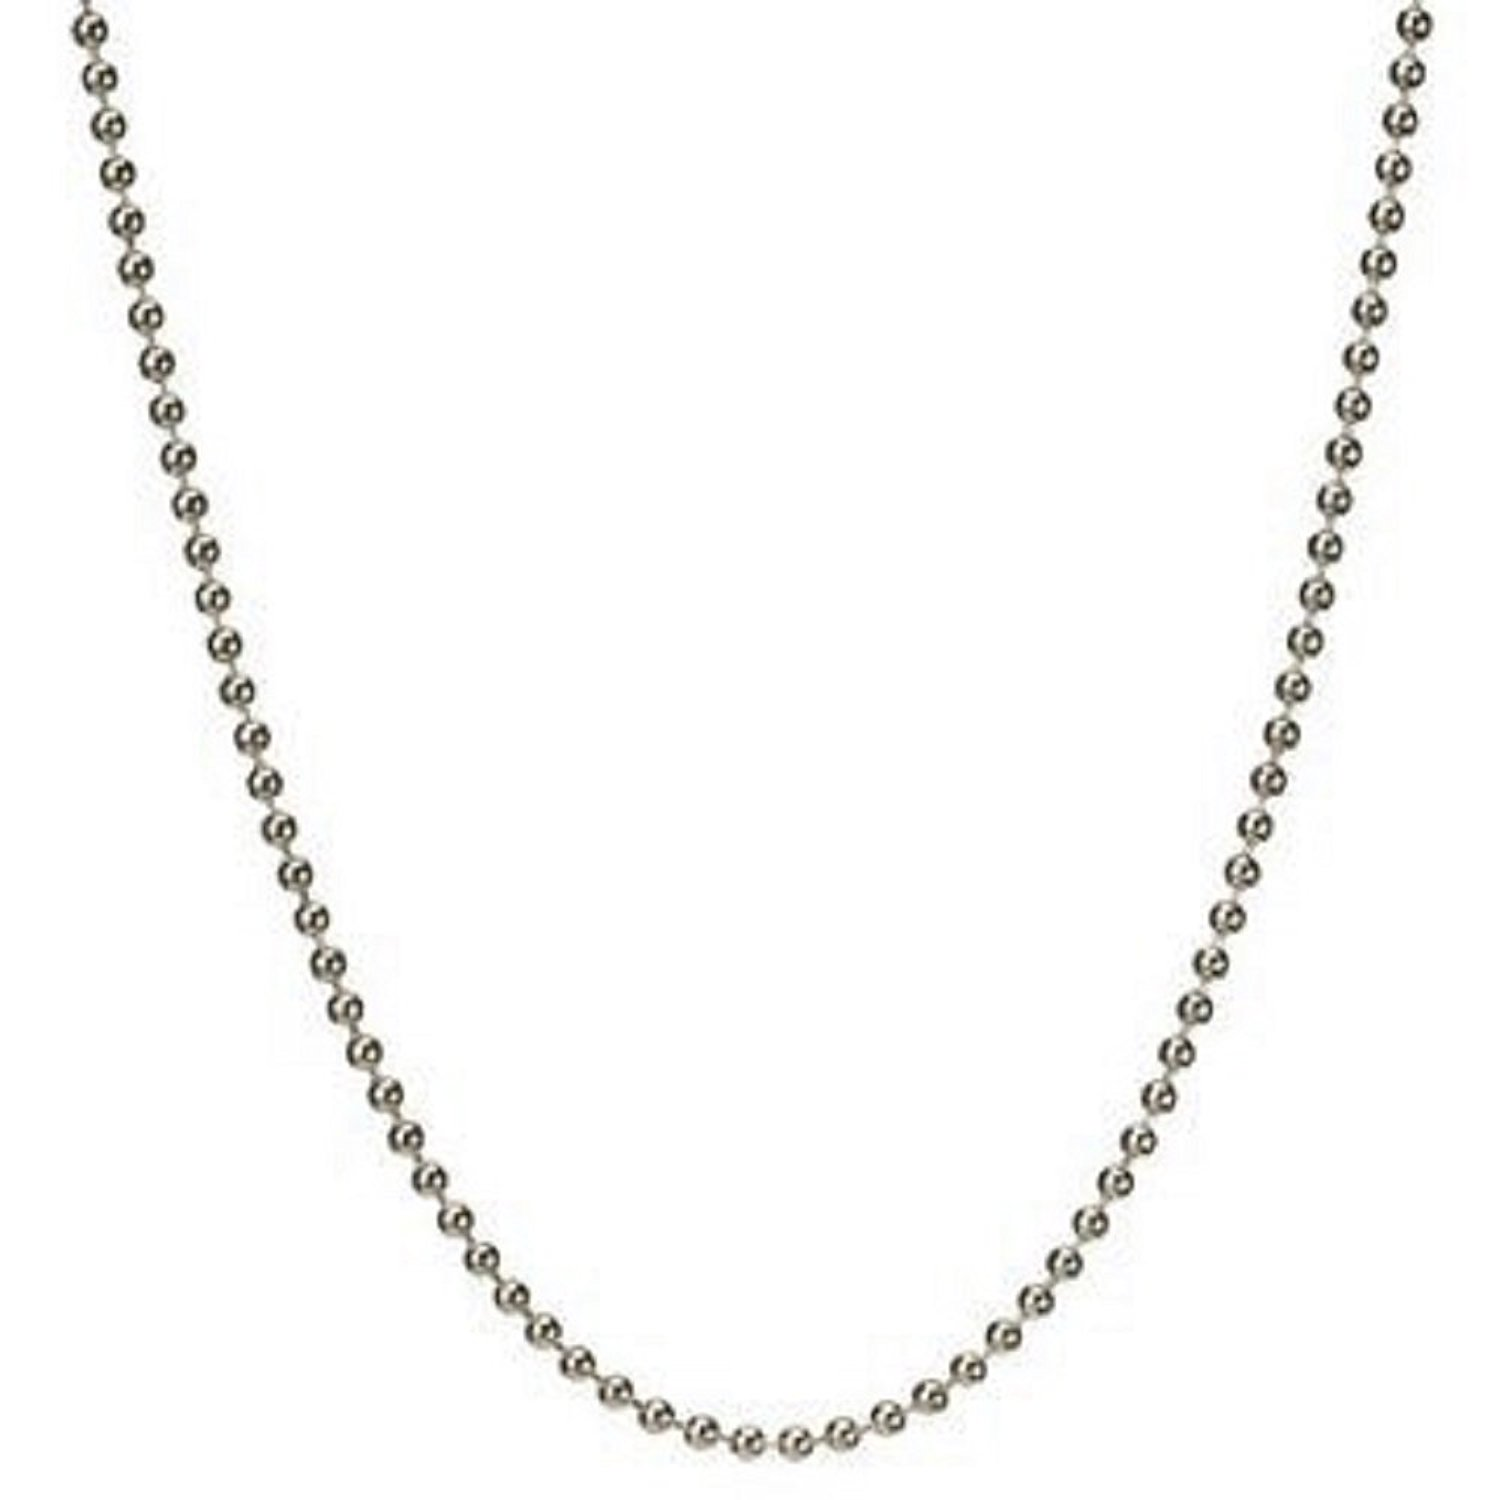 """2.5mm Solid Round Link Ball Beaded Chain Necklace & Bracelet Italian .925 Sterling Silver 7"""", 8"""", 14"""", 16"""", 18"""", 20"""", 22"""", 24"""", 26"""", 30"""", 33"""", 36"""" inches - 250Gauge (Nickel Free)"""